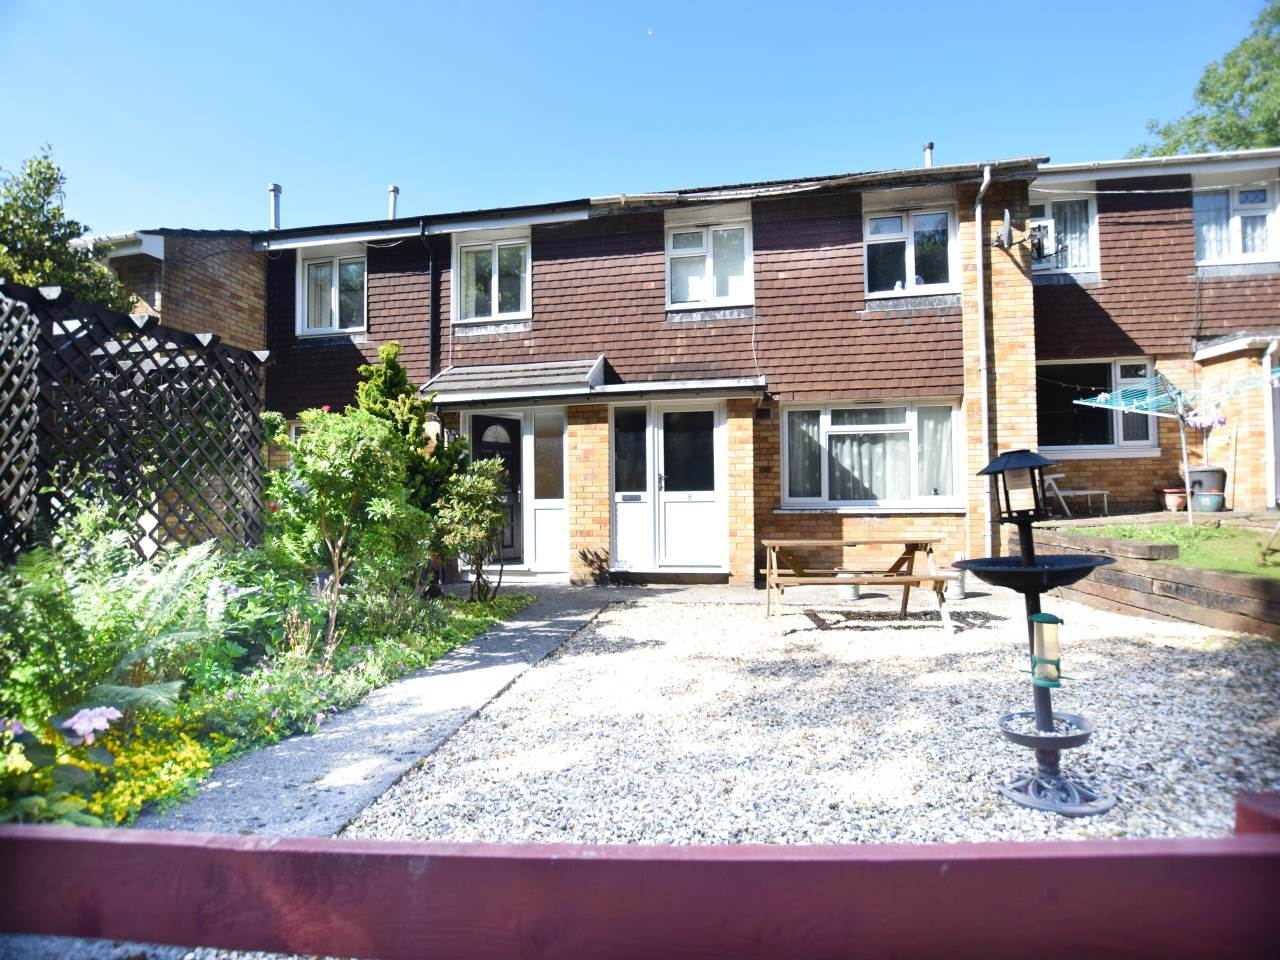 3 bed house for sale in Penparcau, SY23